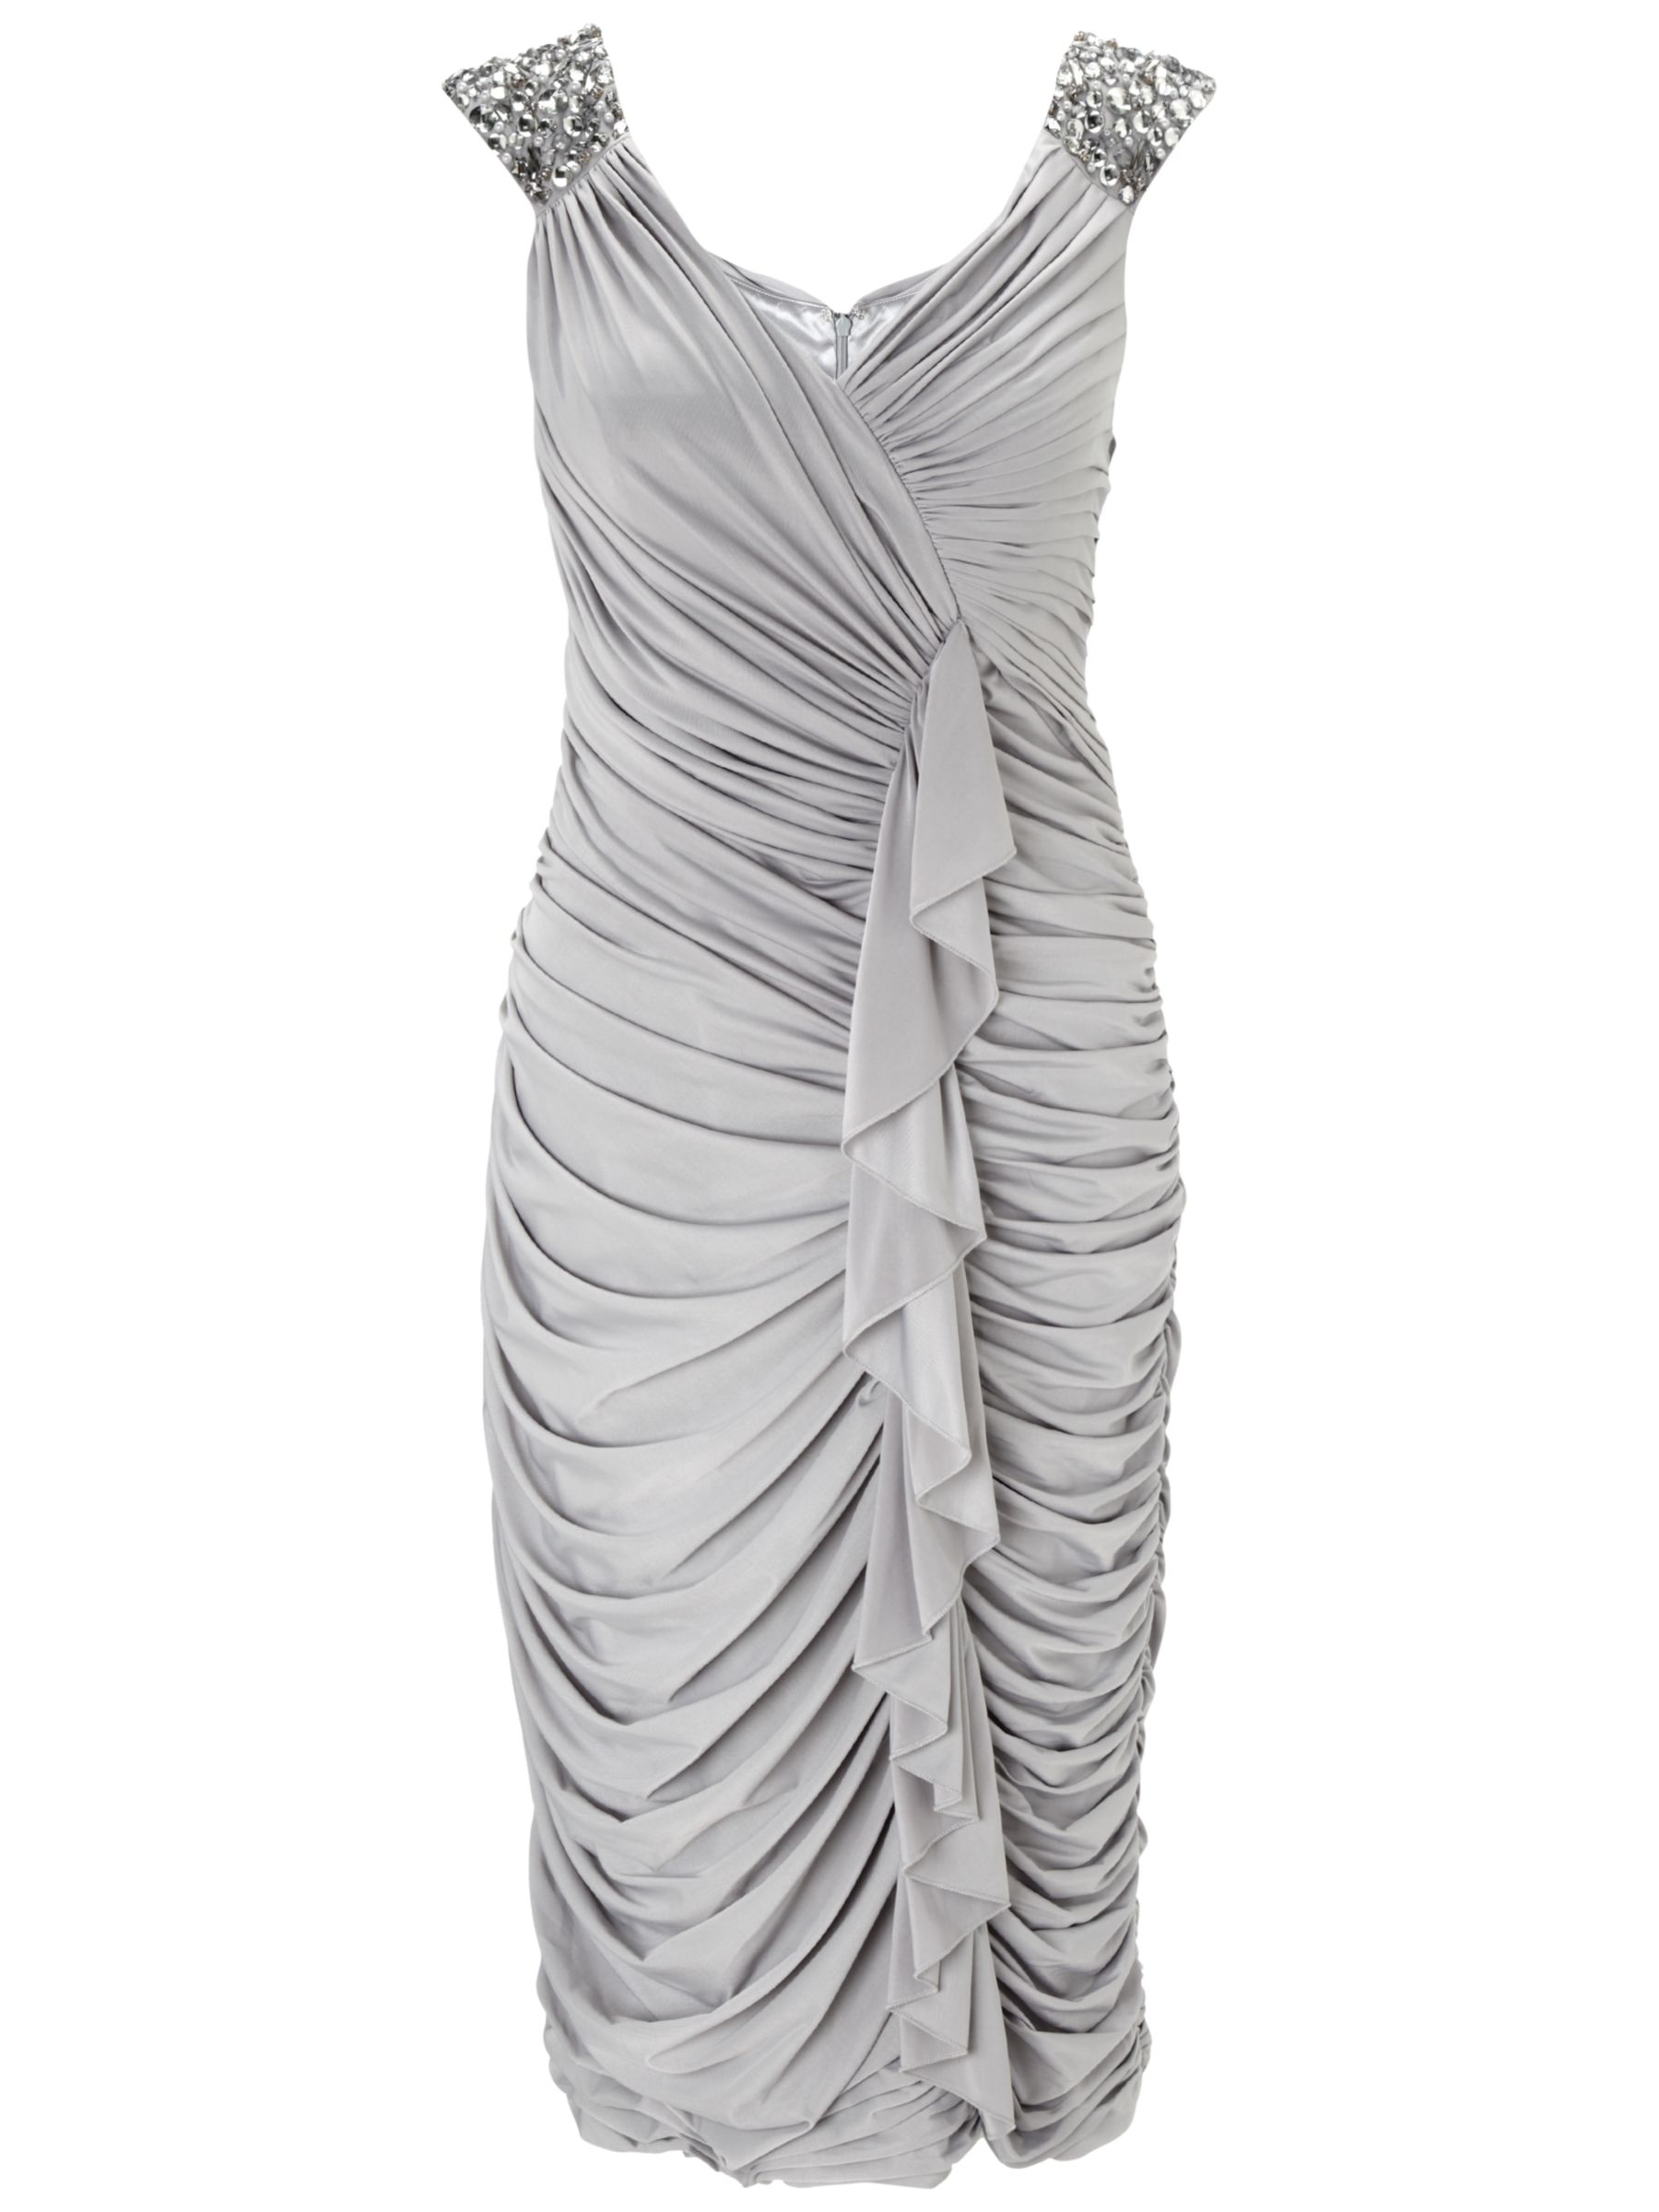 Gina Bacconi Ruched Jersey Dress, Silver